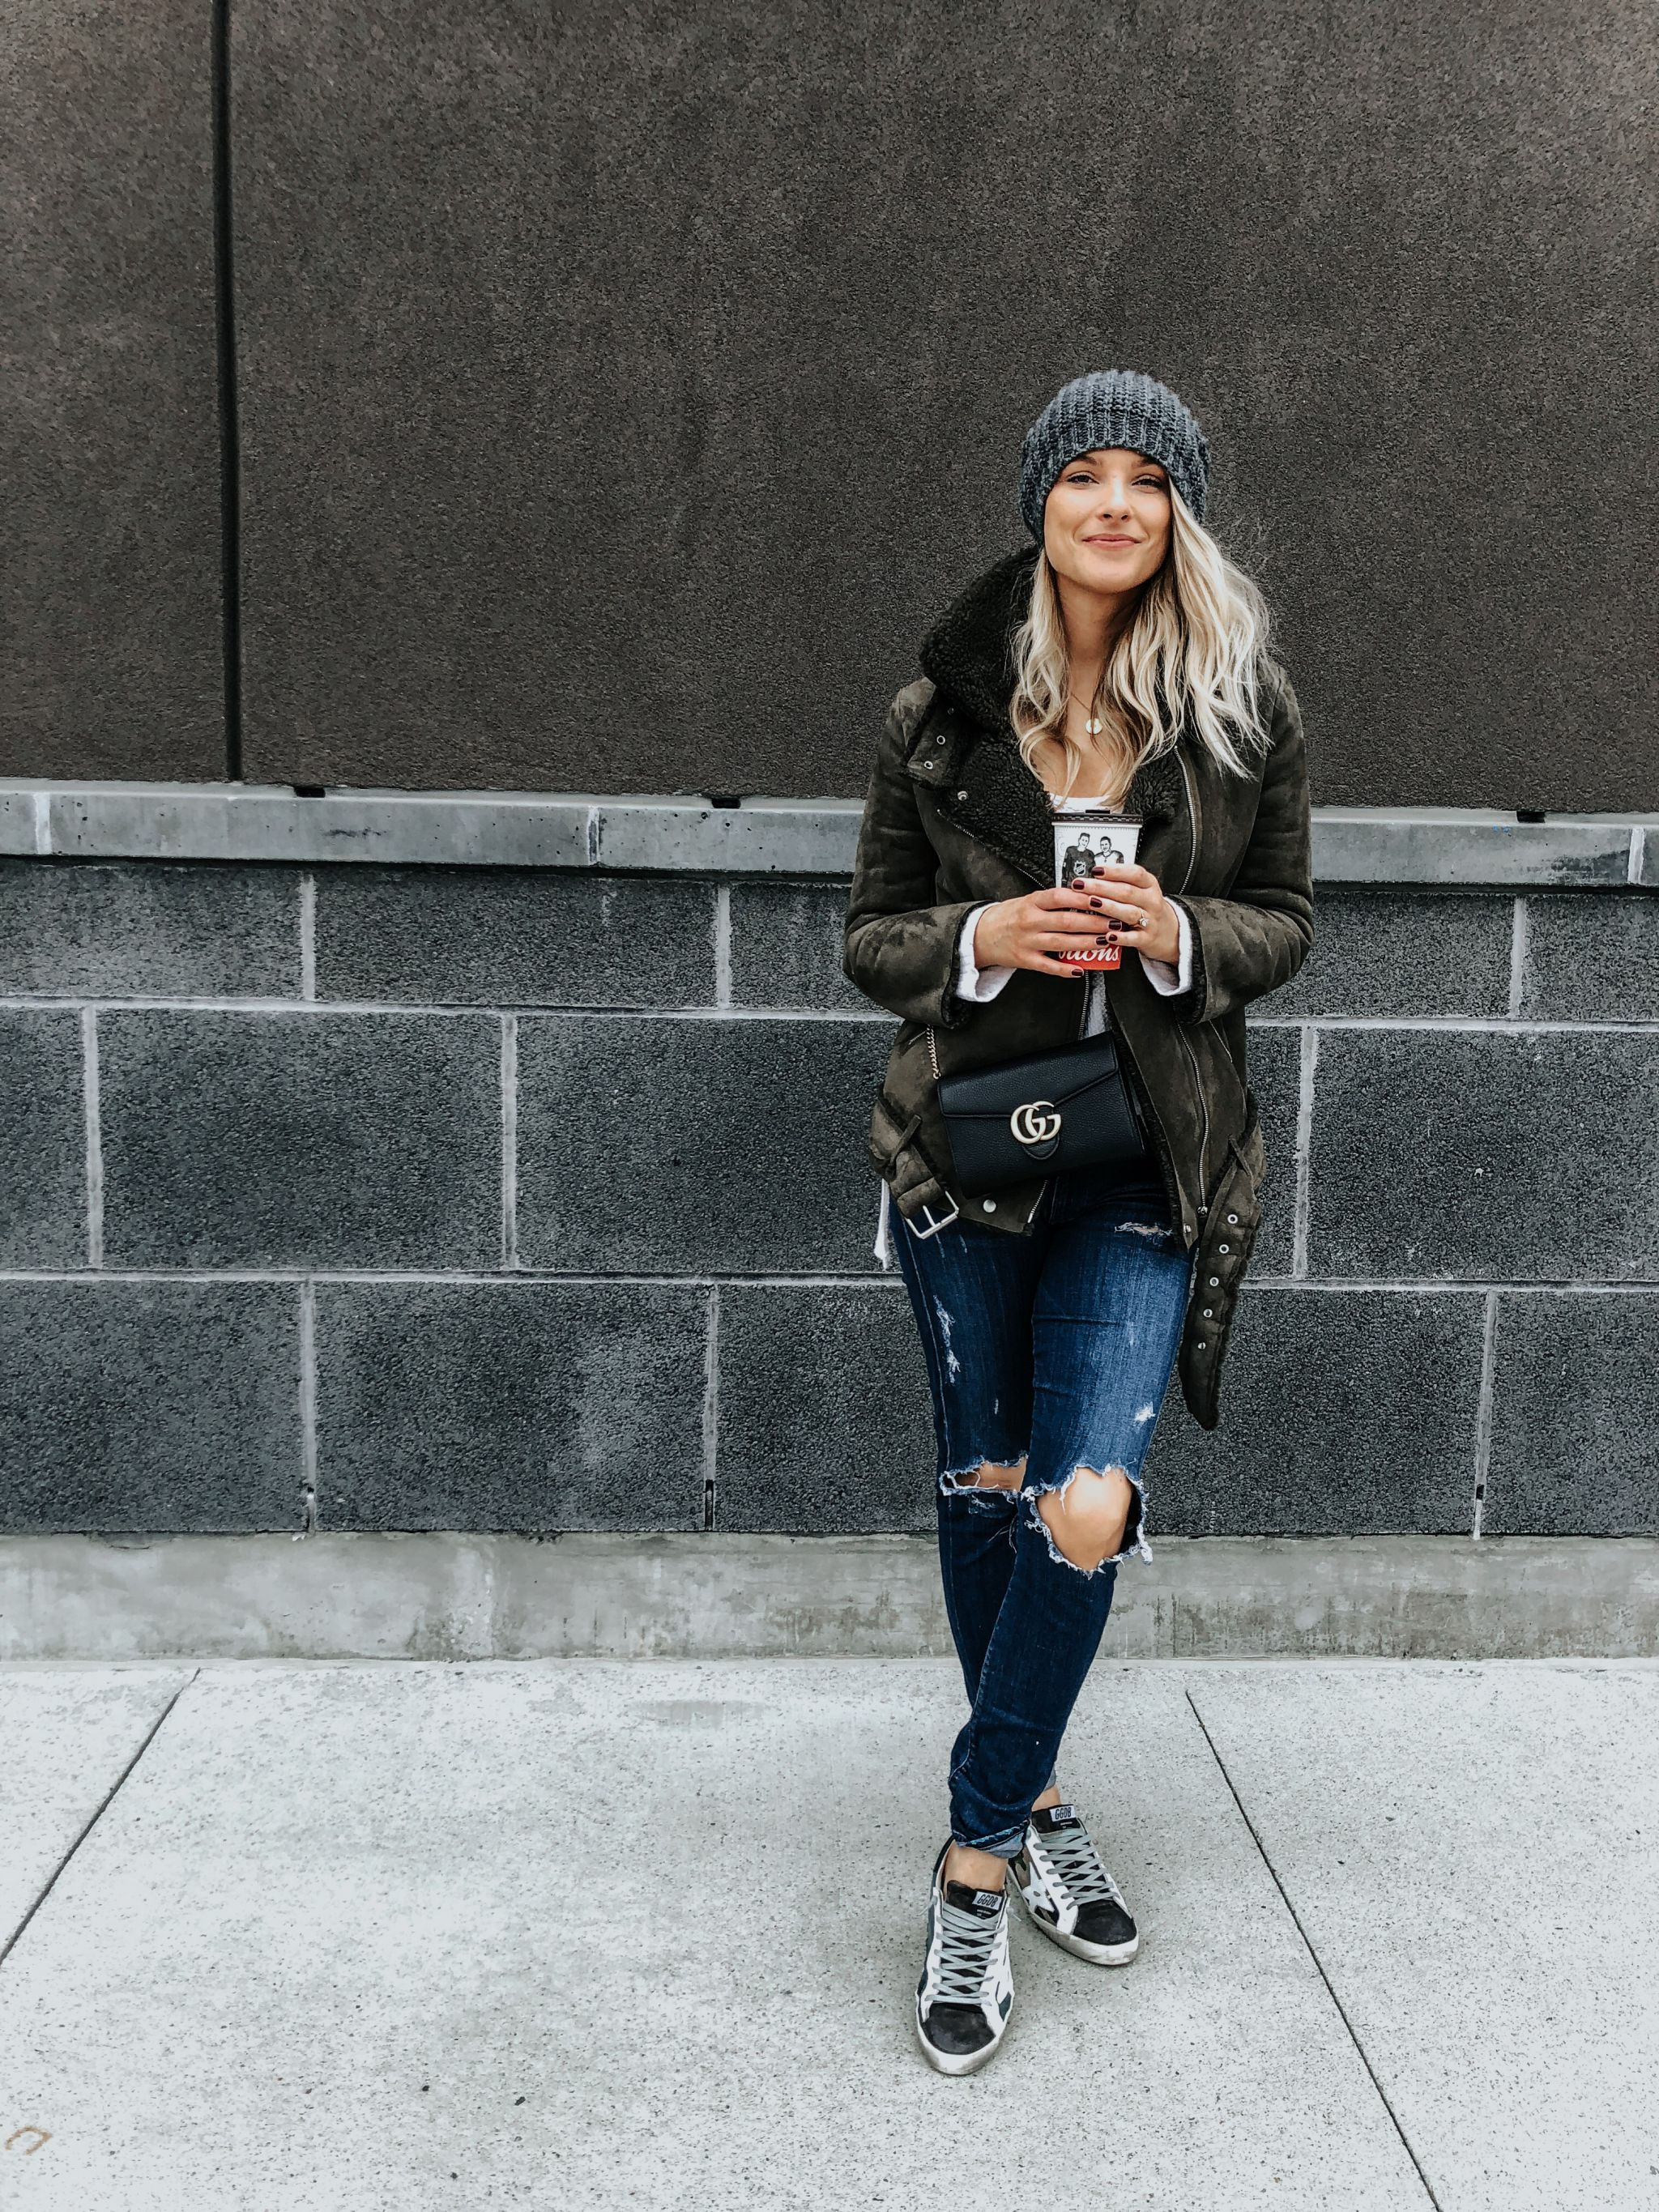 1 person, fashion blogger in fall outfit